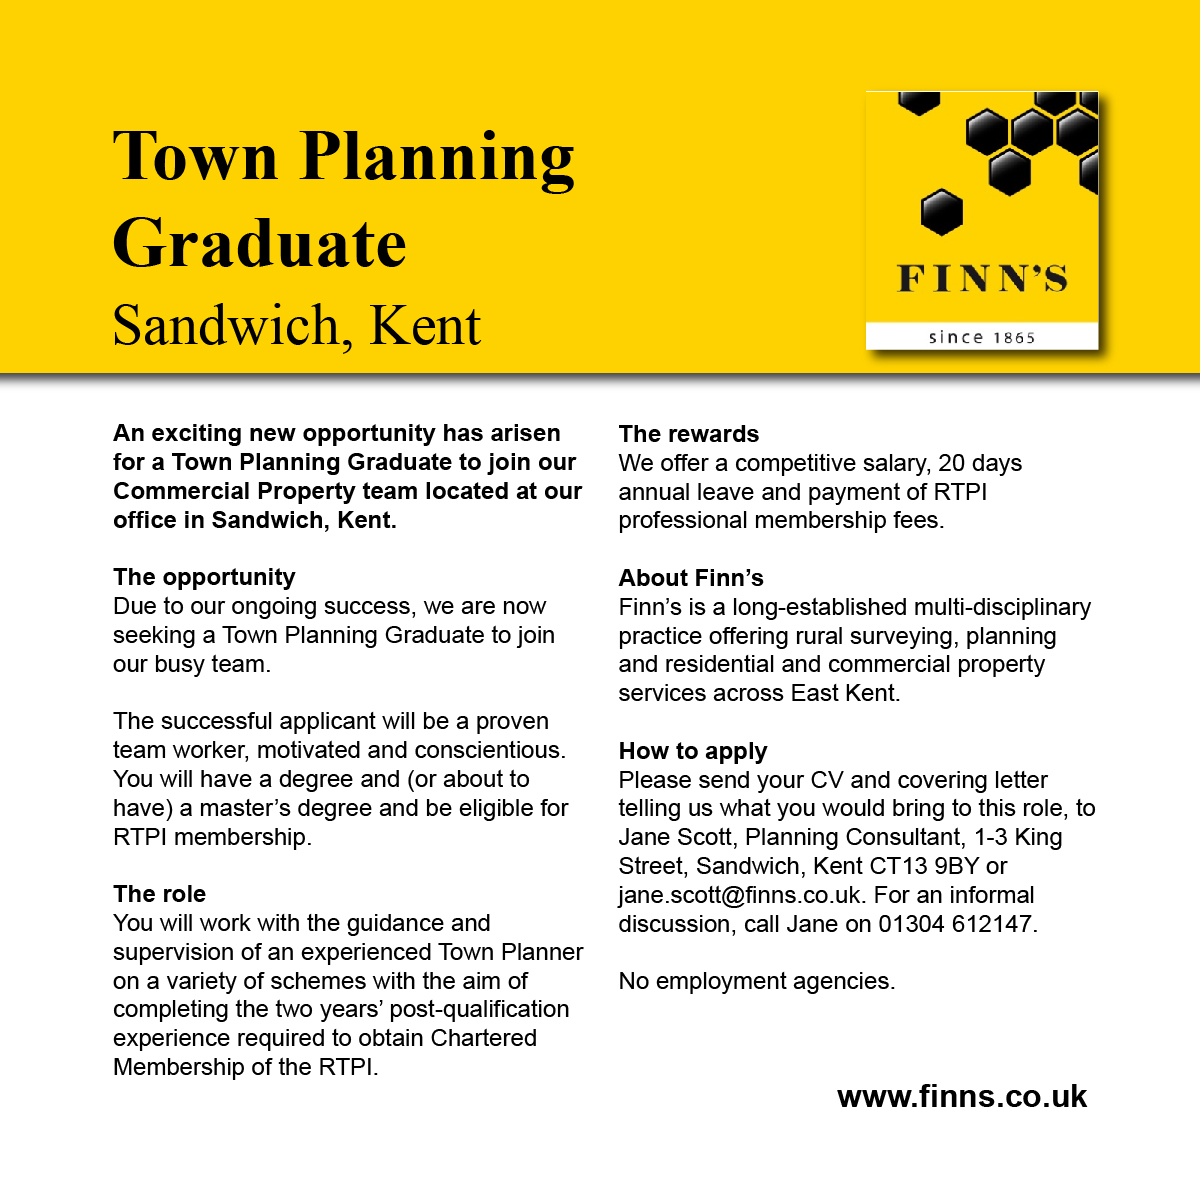 We are recruiting a Town Planning Graduate to our Commercial team in Sandwich